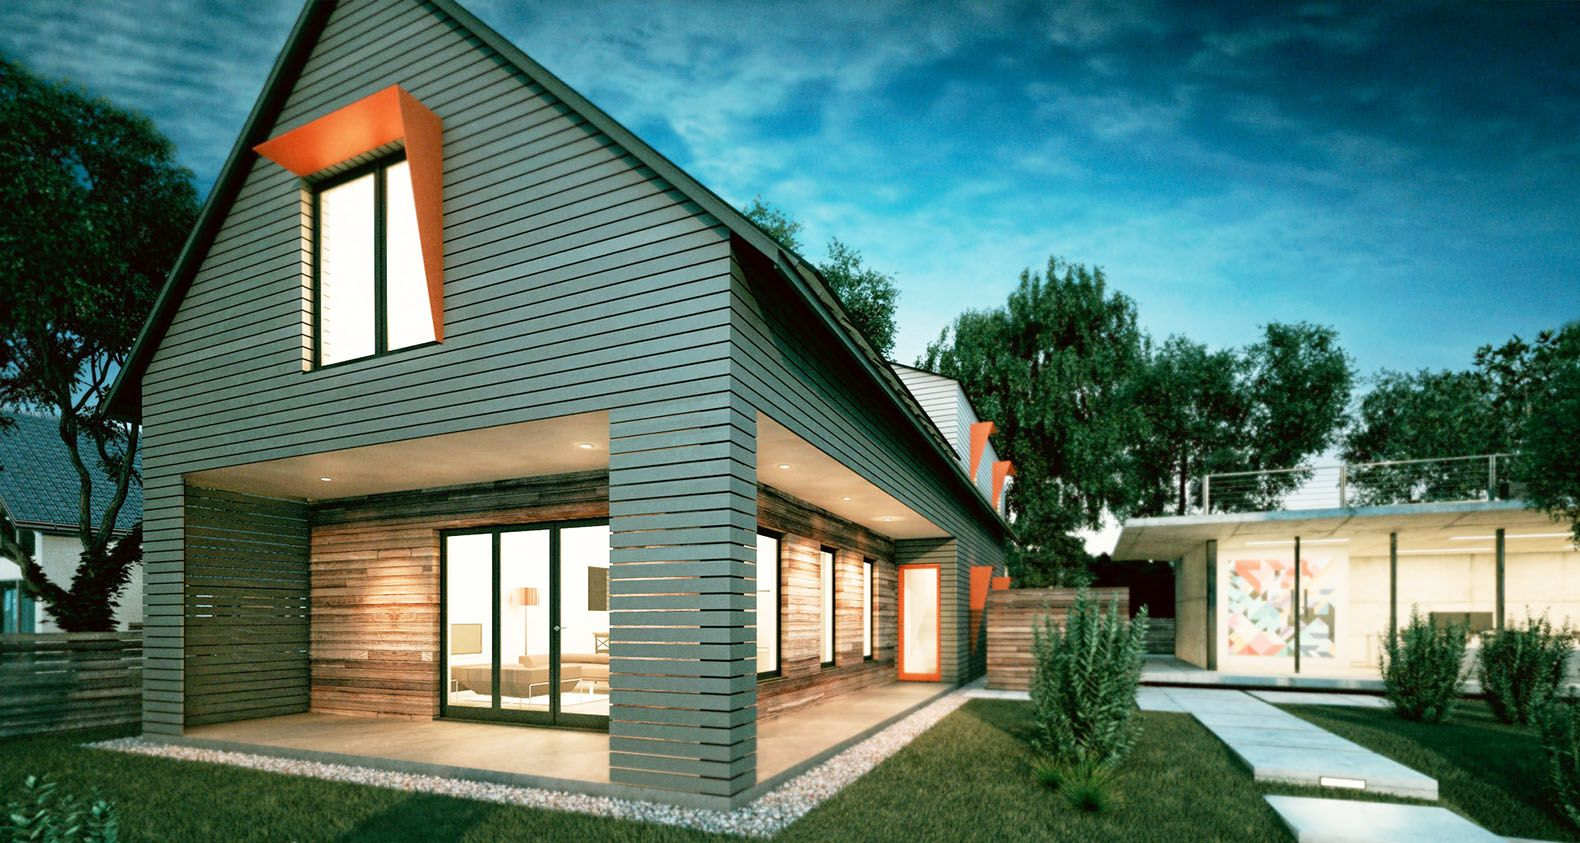 Acre Design S Automated Axiom House Is An Affordable Zero Energy Home Ecological House Energy Efficient Homes House Design